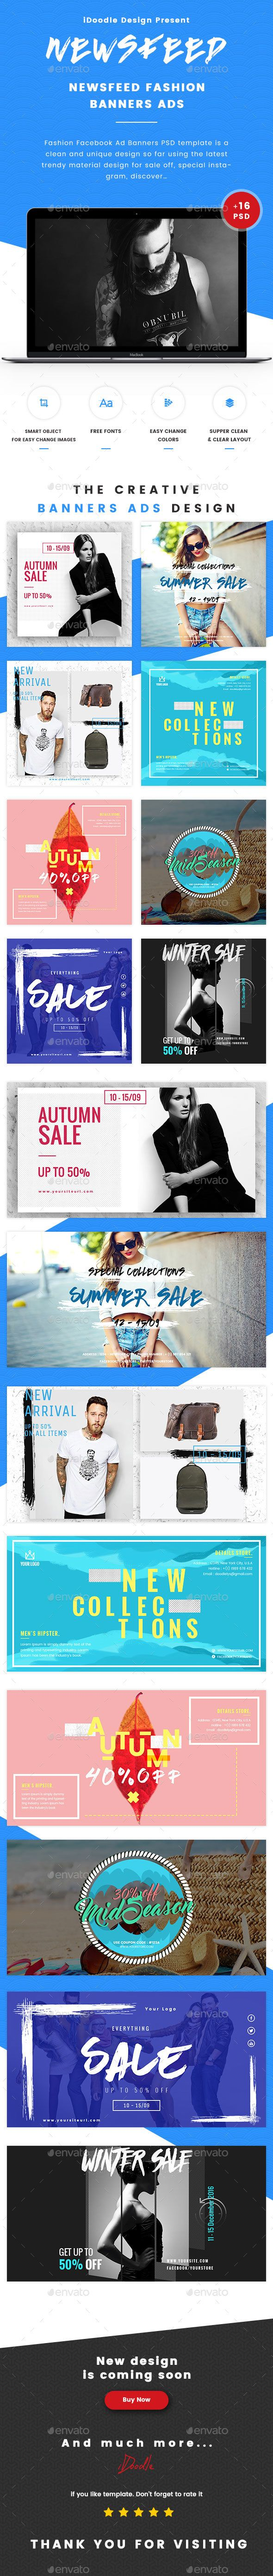 Fashion Facebook Ad Banners PSD Size Each Banners Ads - Facebook ad size template